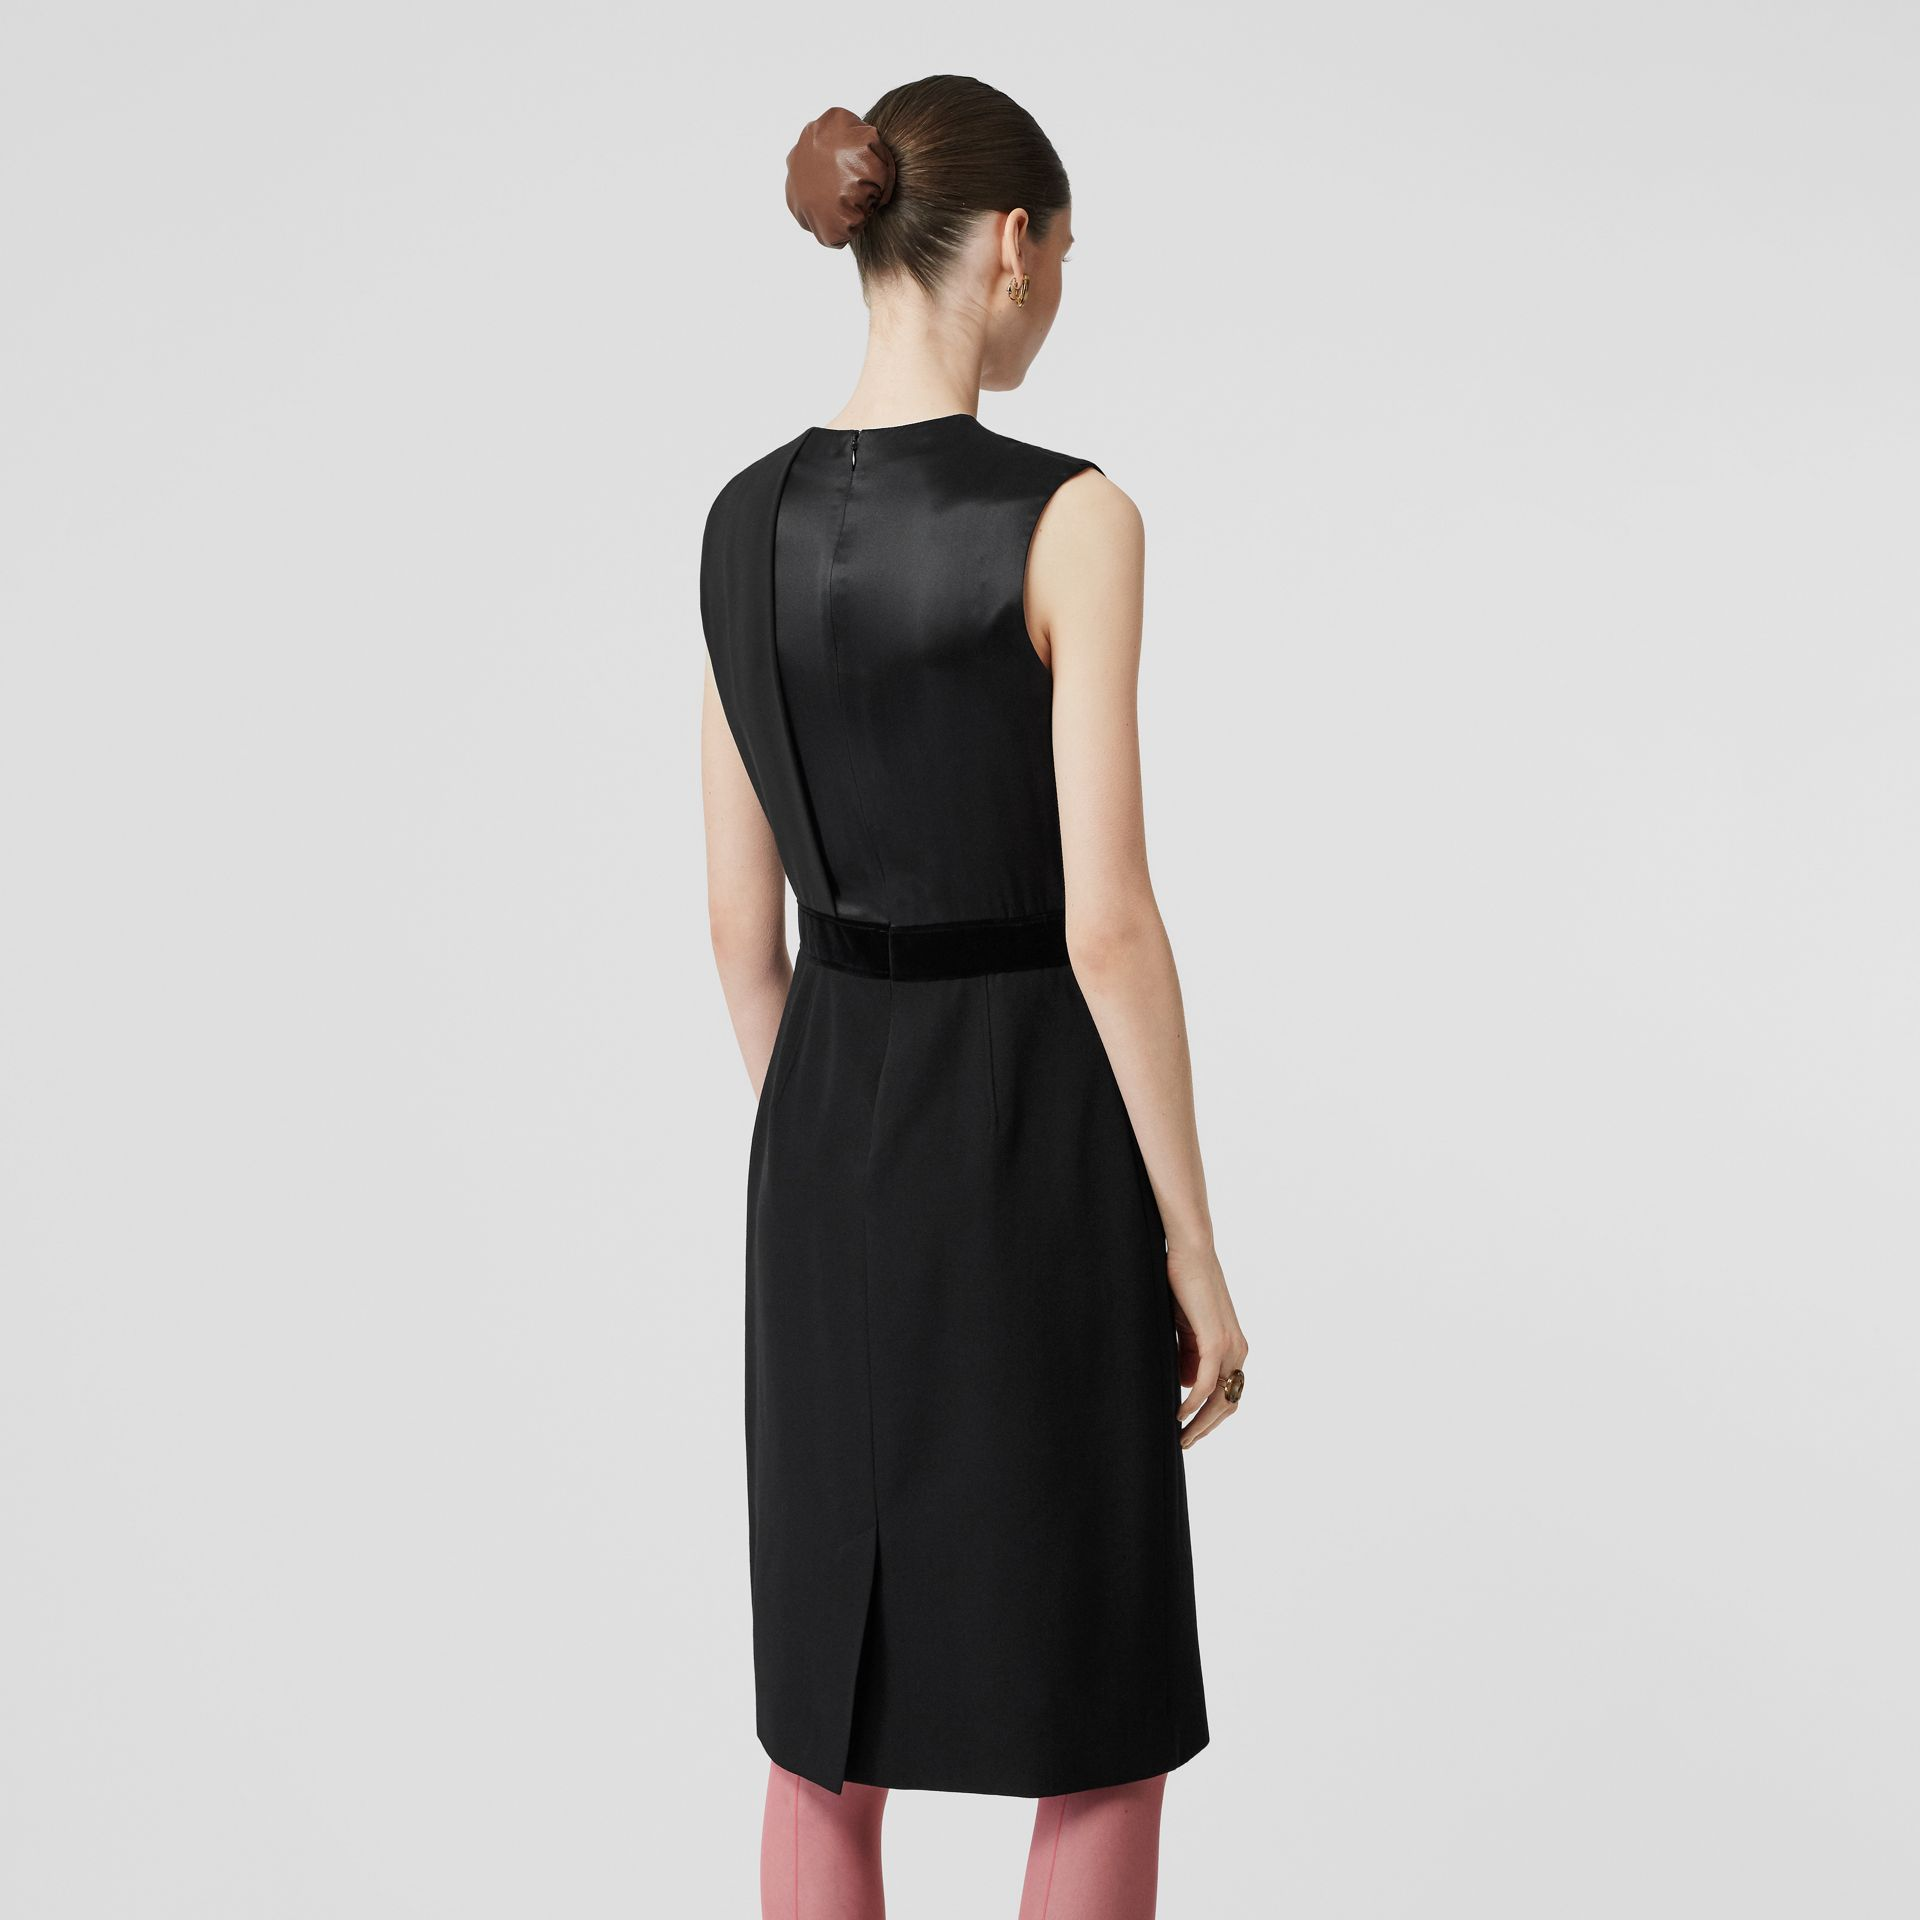 Panel Detail Silk and Wool Shift Dress in Black - Women | Burberry - gallery image 2